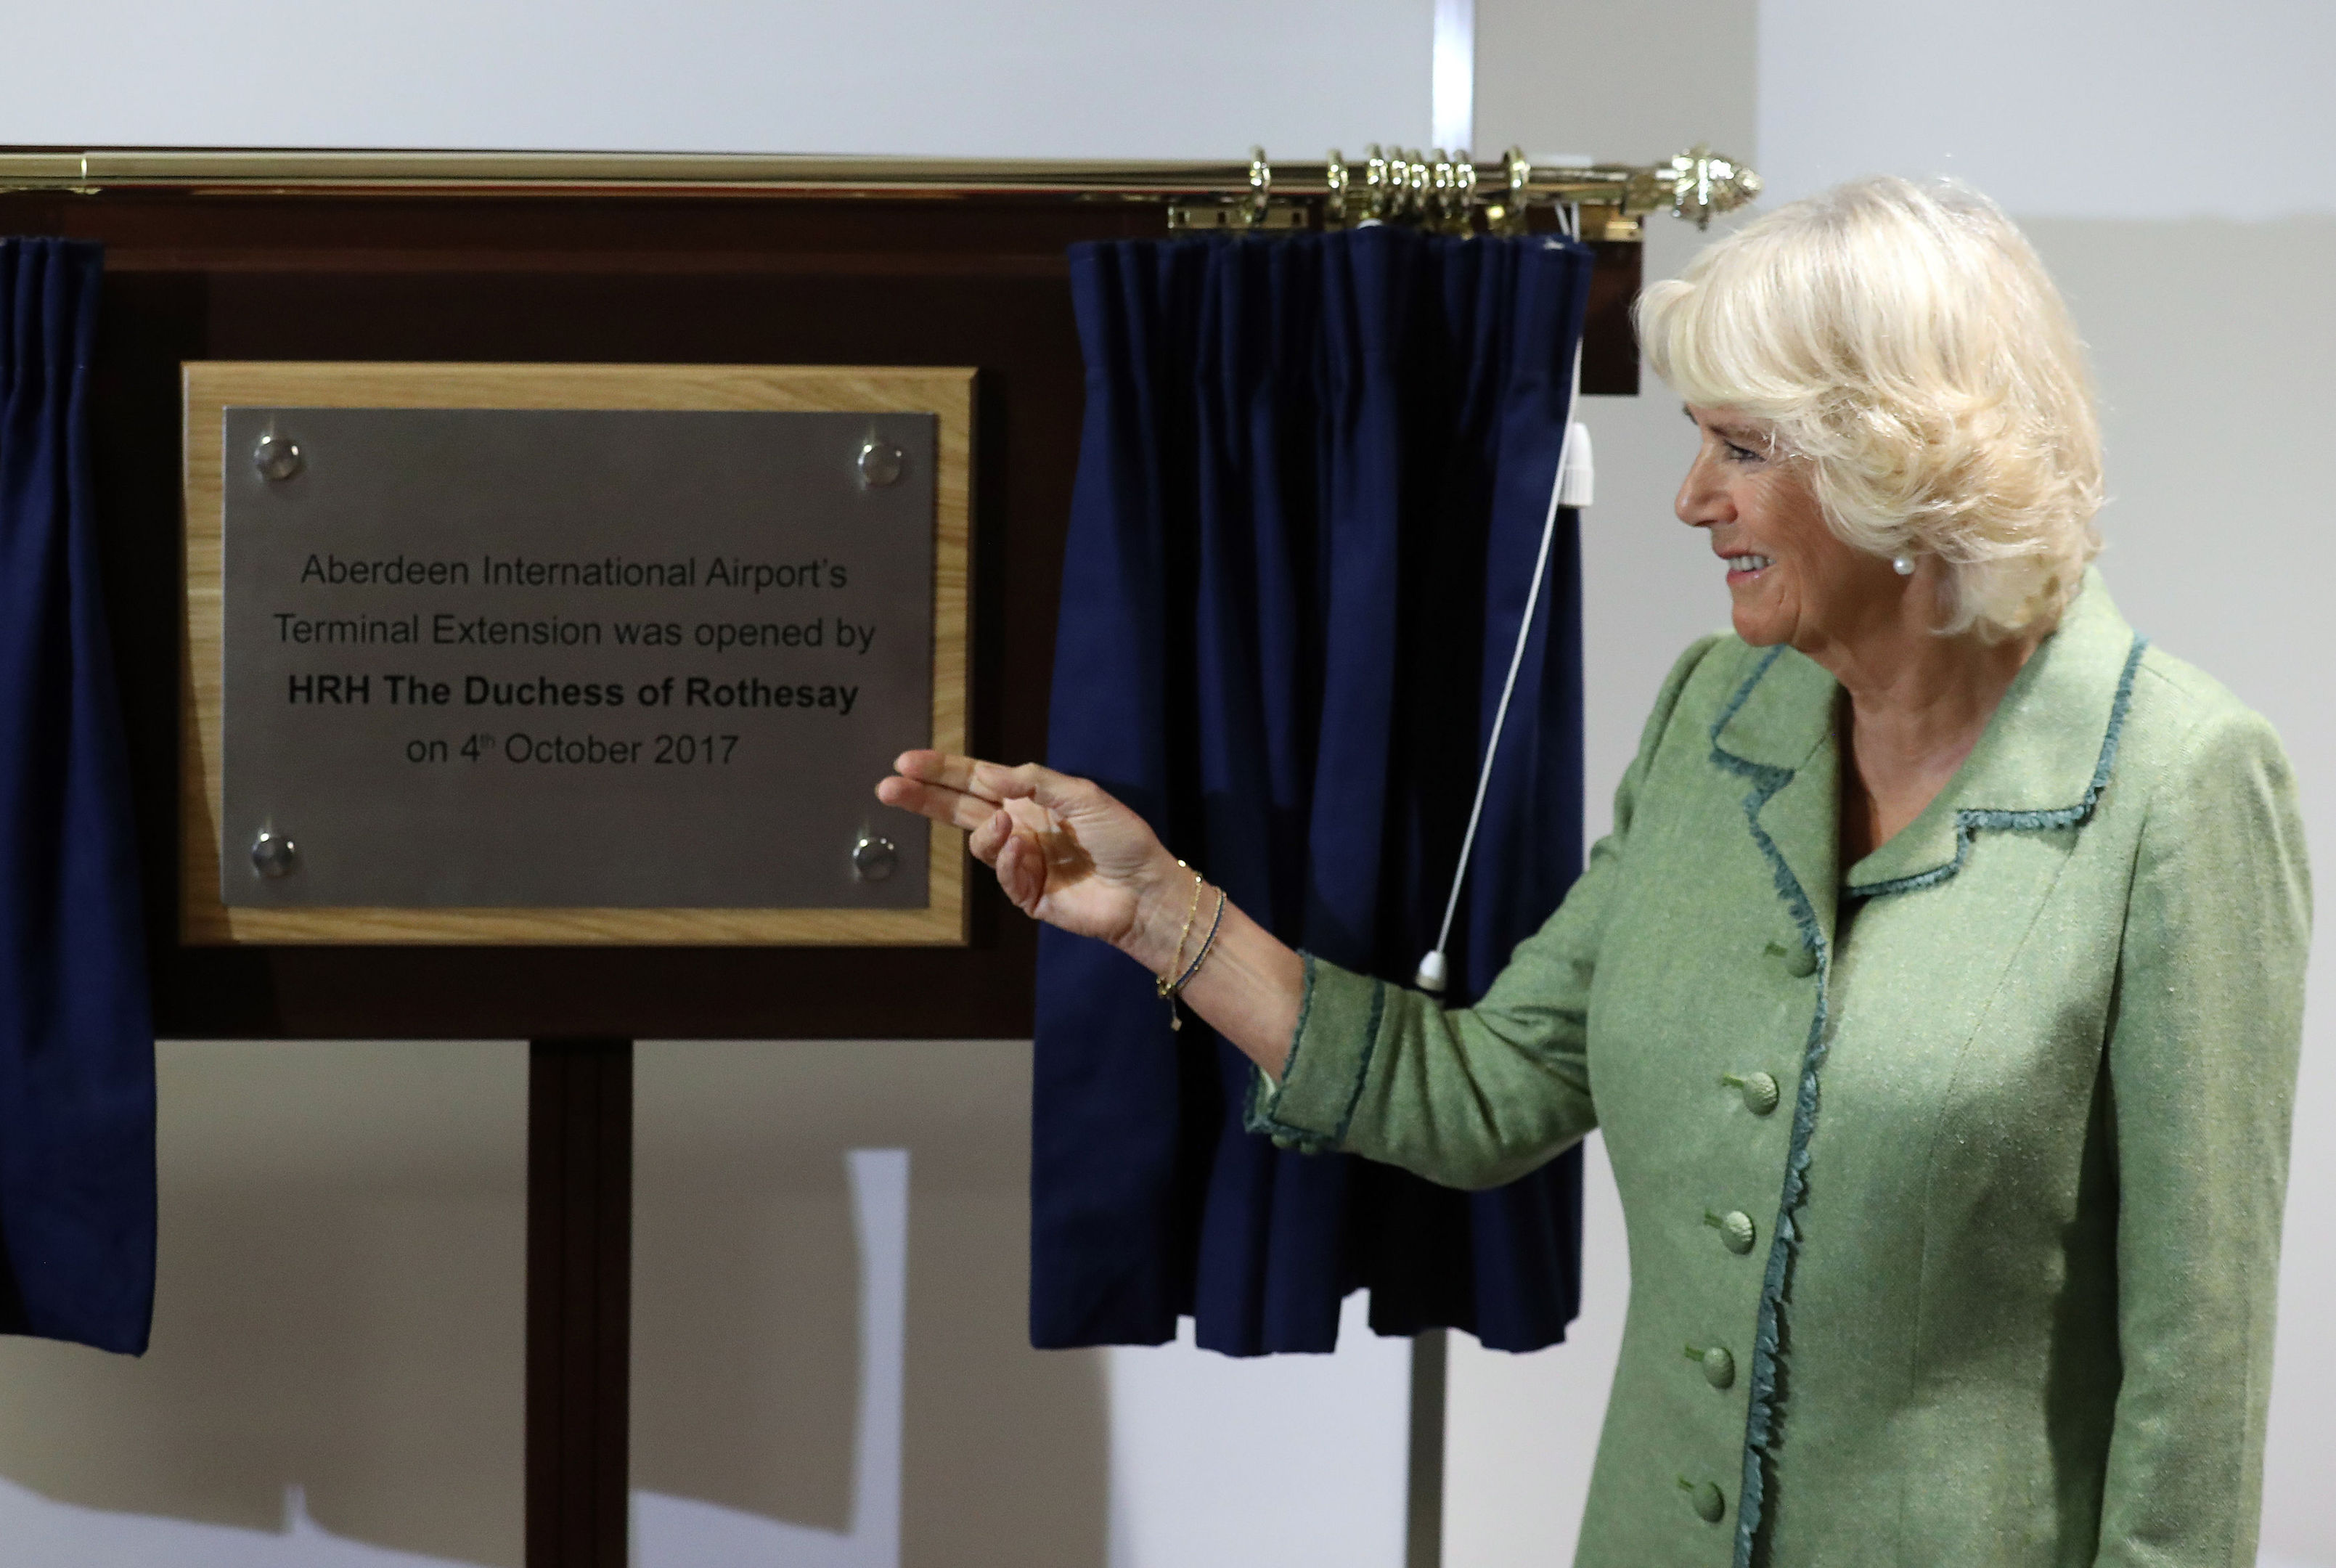 Duchess of Cornwall (known as the Duchess of Rothesay while in Scotland) unveils a plaque whilst opening a new extension to Aberdeen International Airport. (Andrew Milligan/PA Wire)